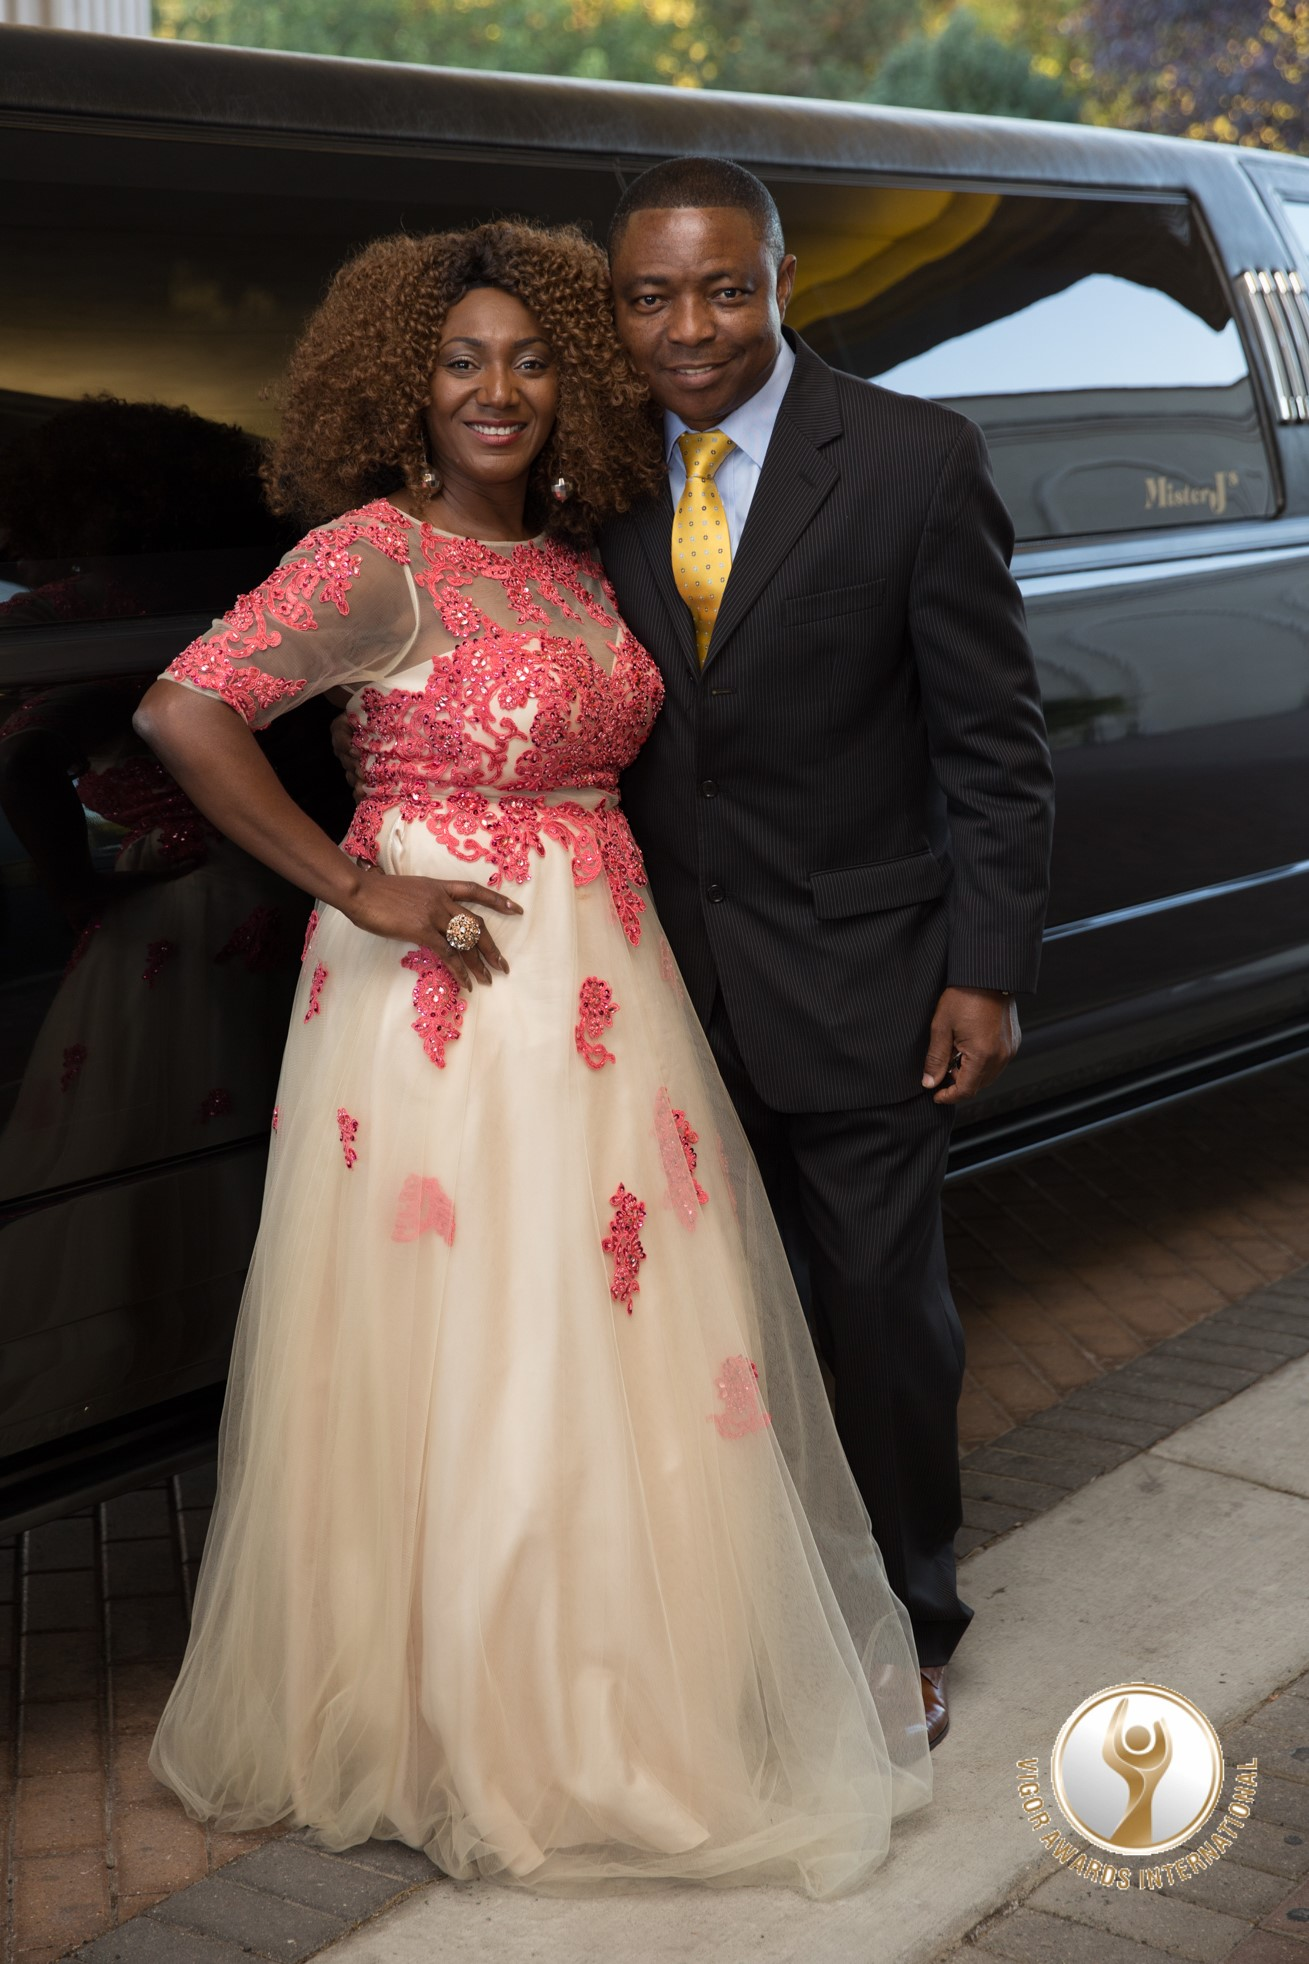 Queen Amina, President of Vigor Awards, with her husband, Victor